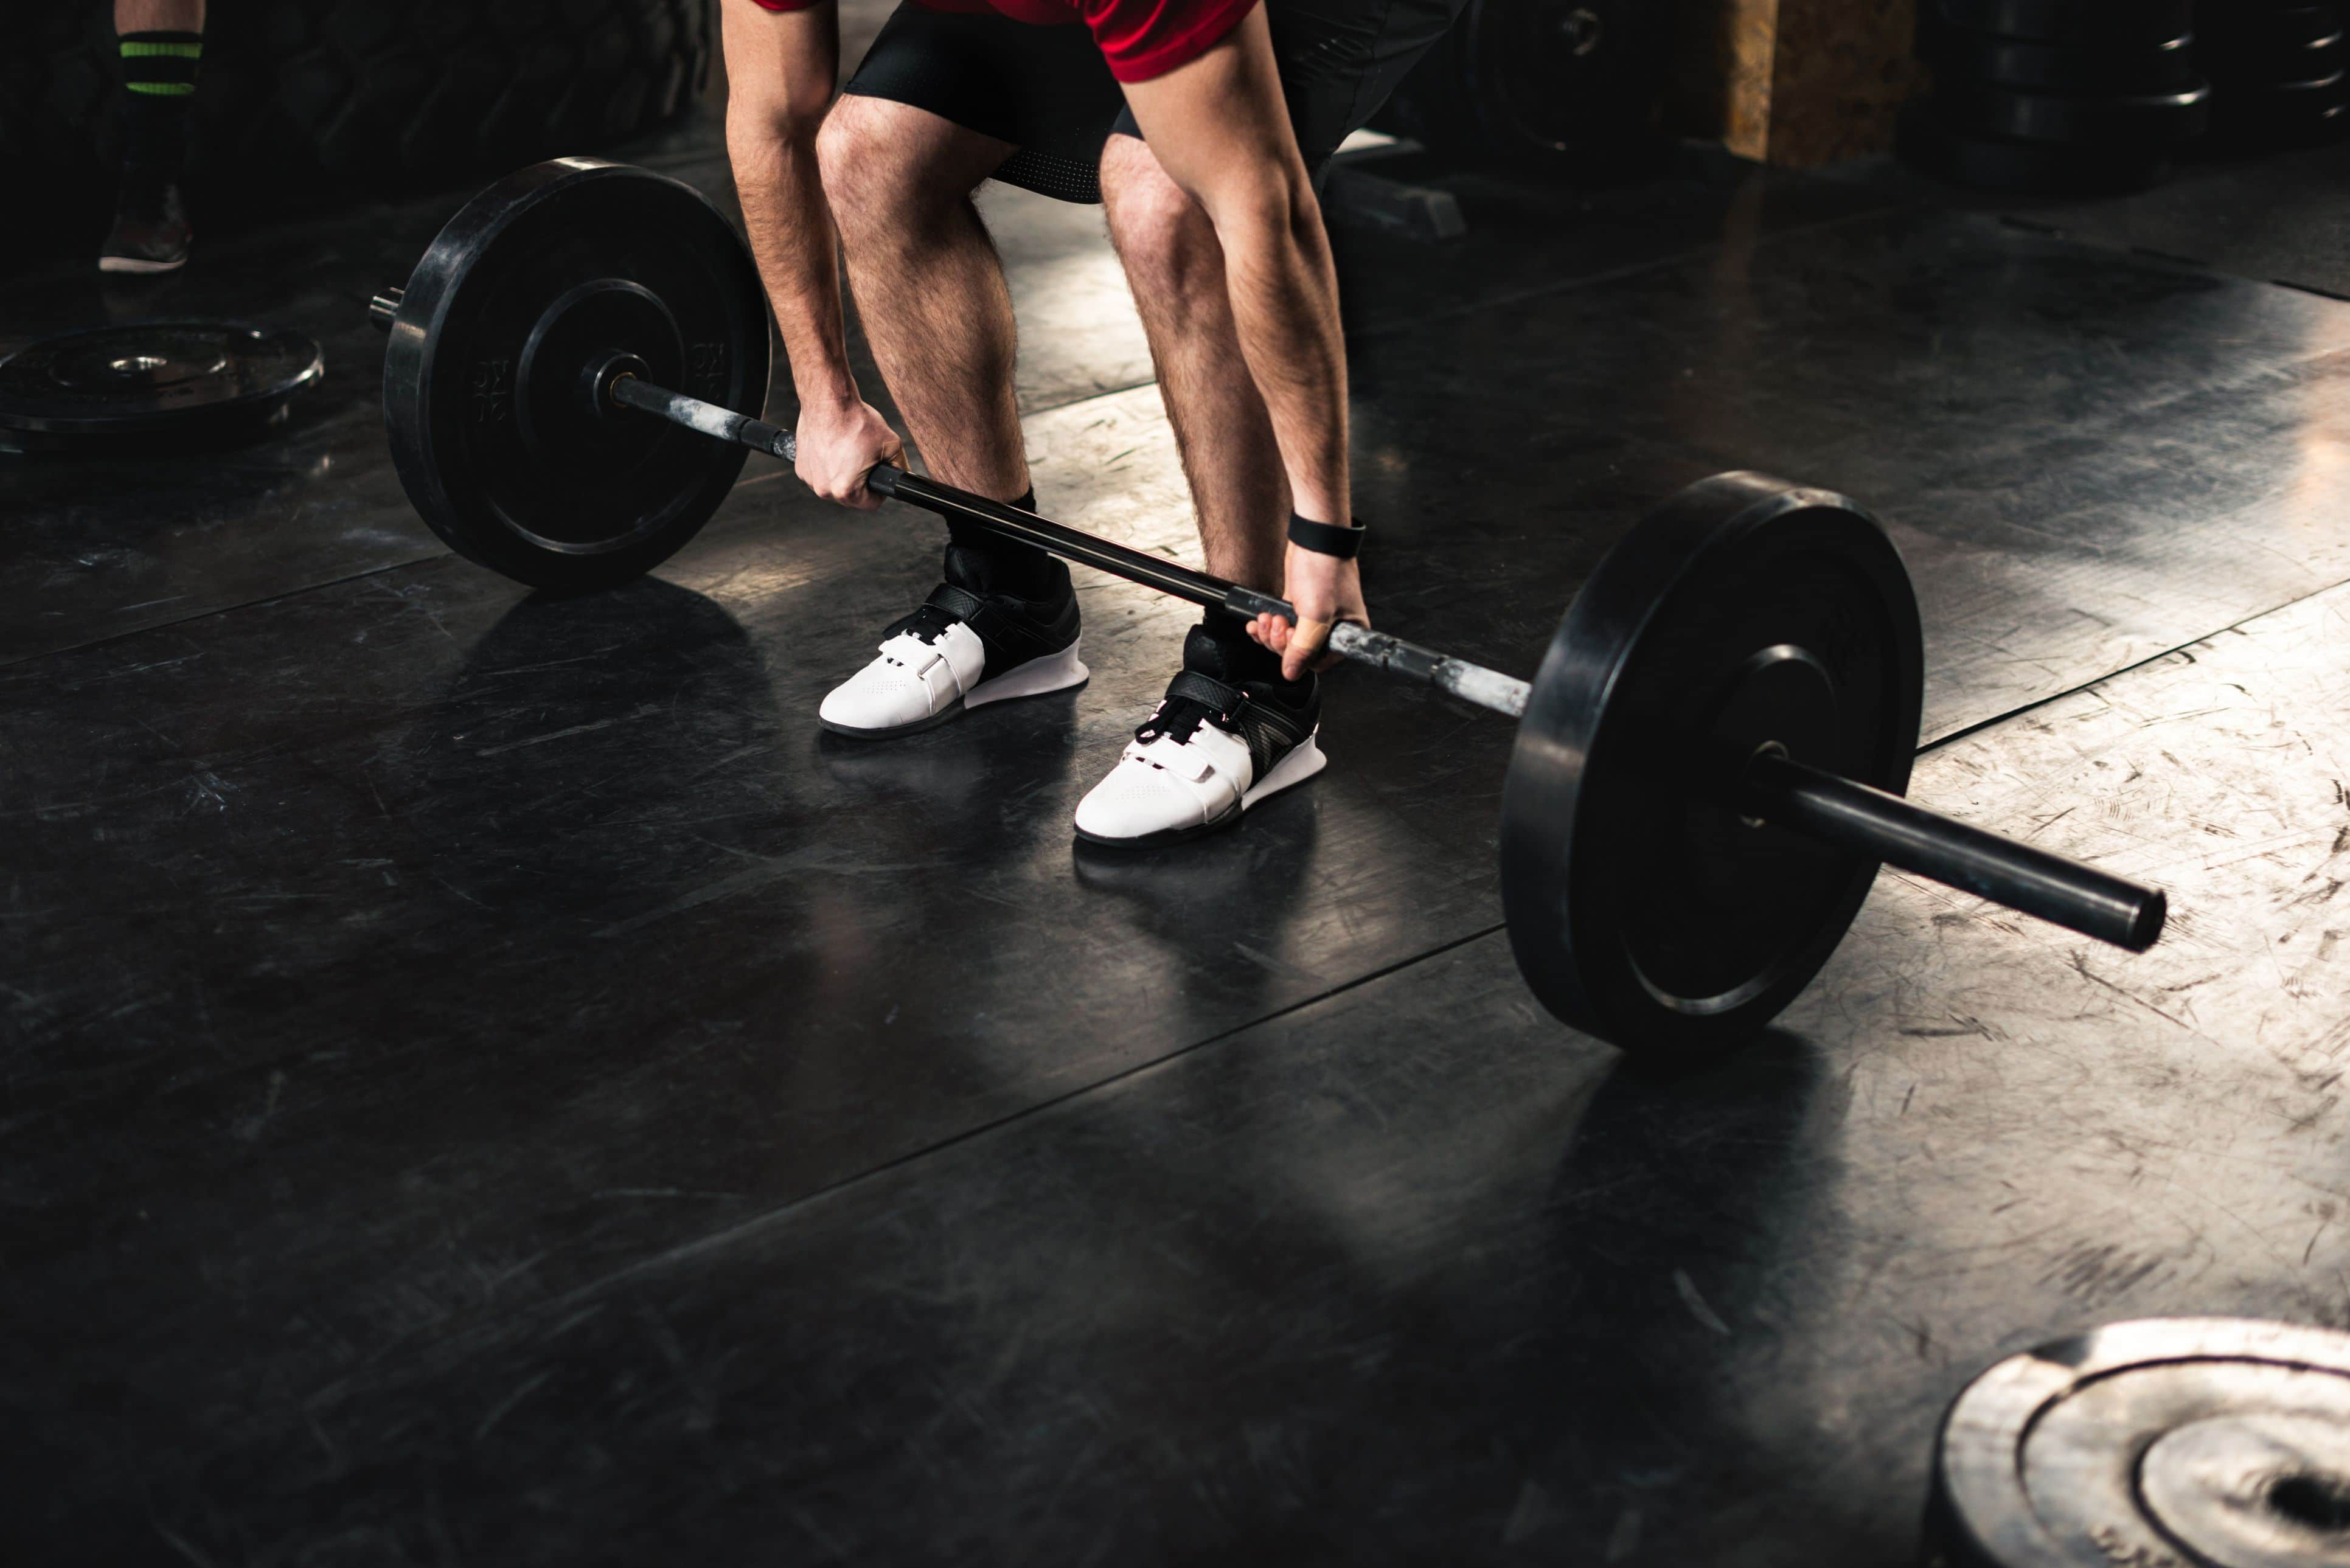 Meilleures chaussures de dynamophilie (powerlifting